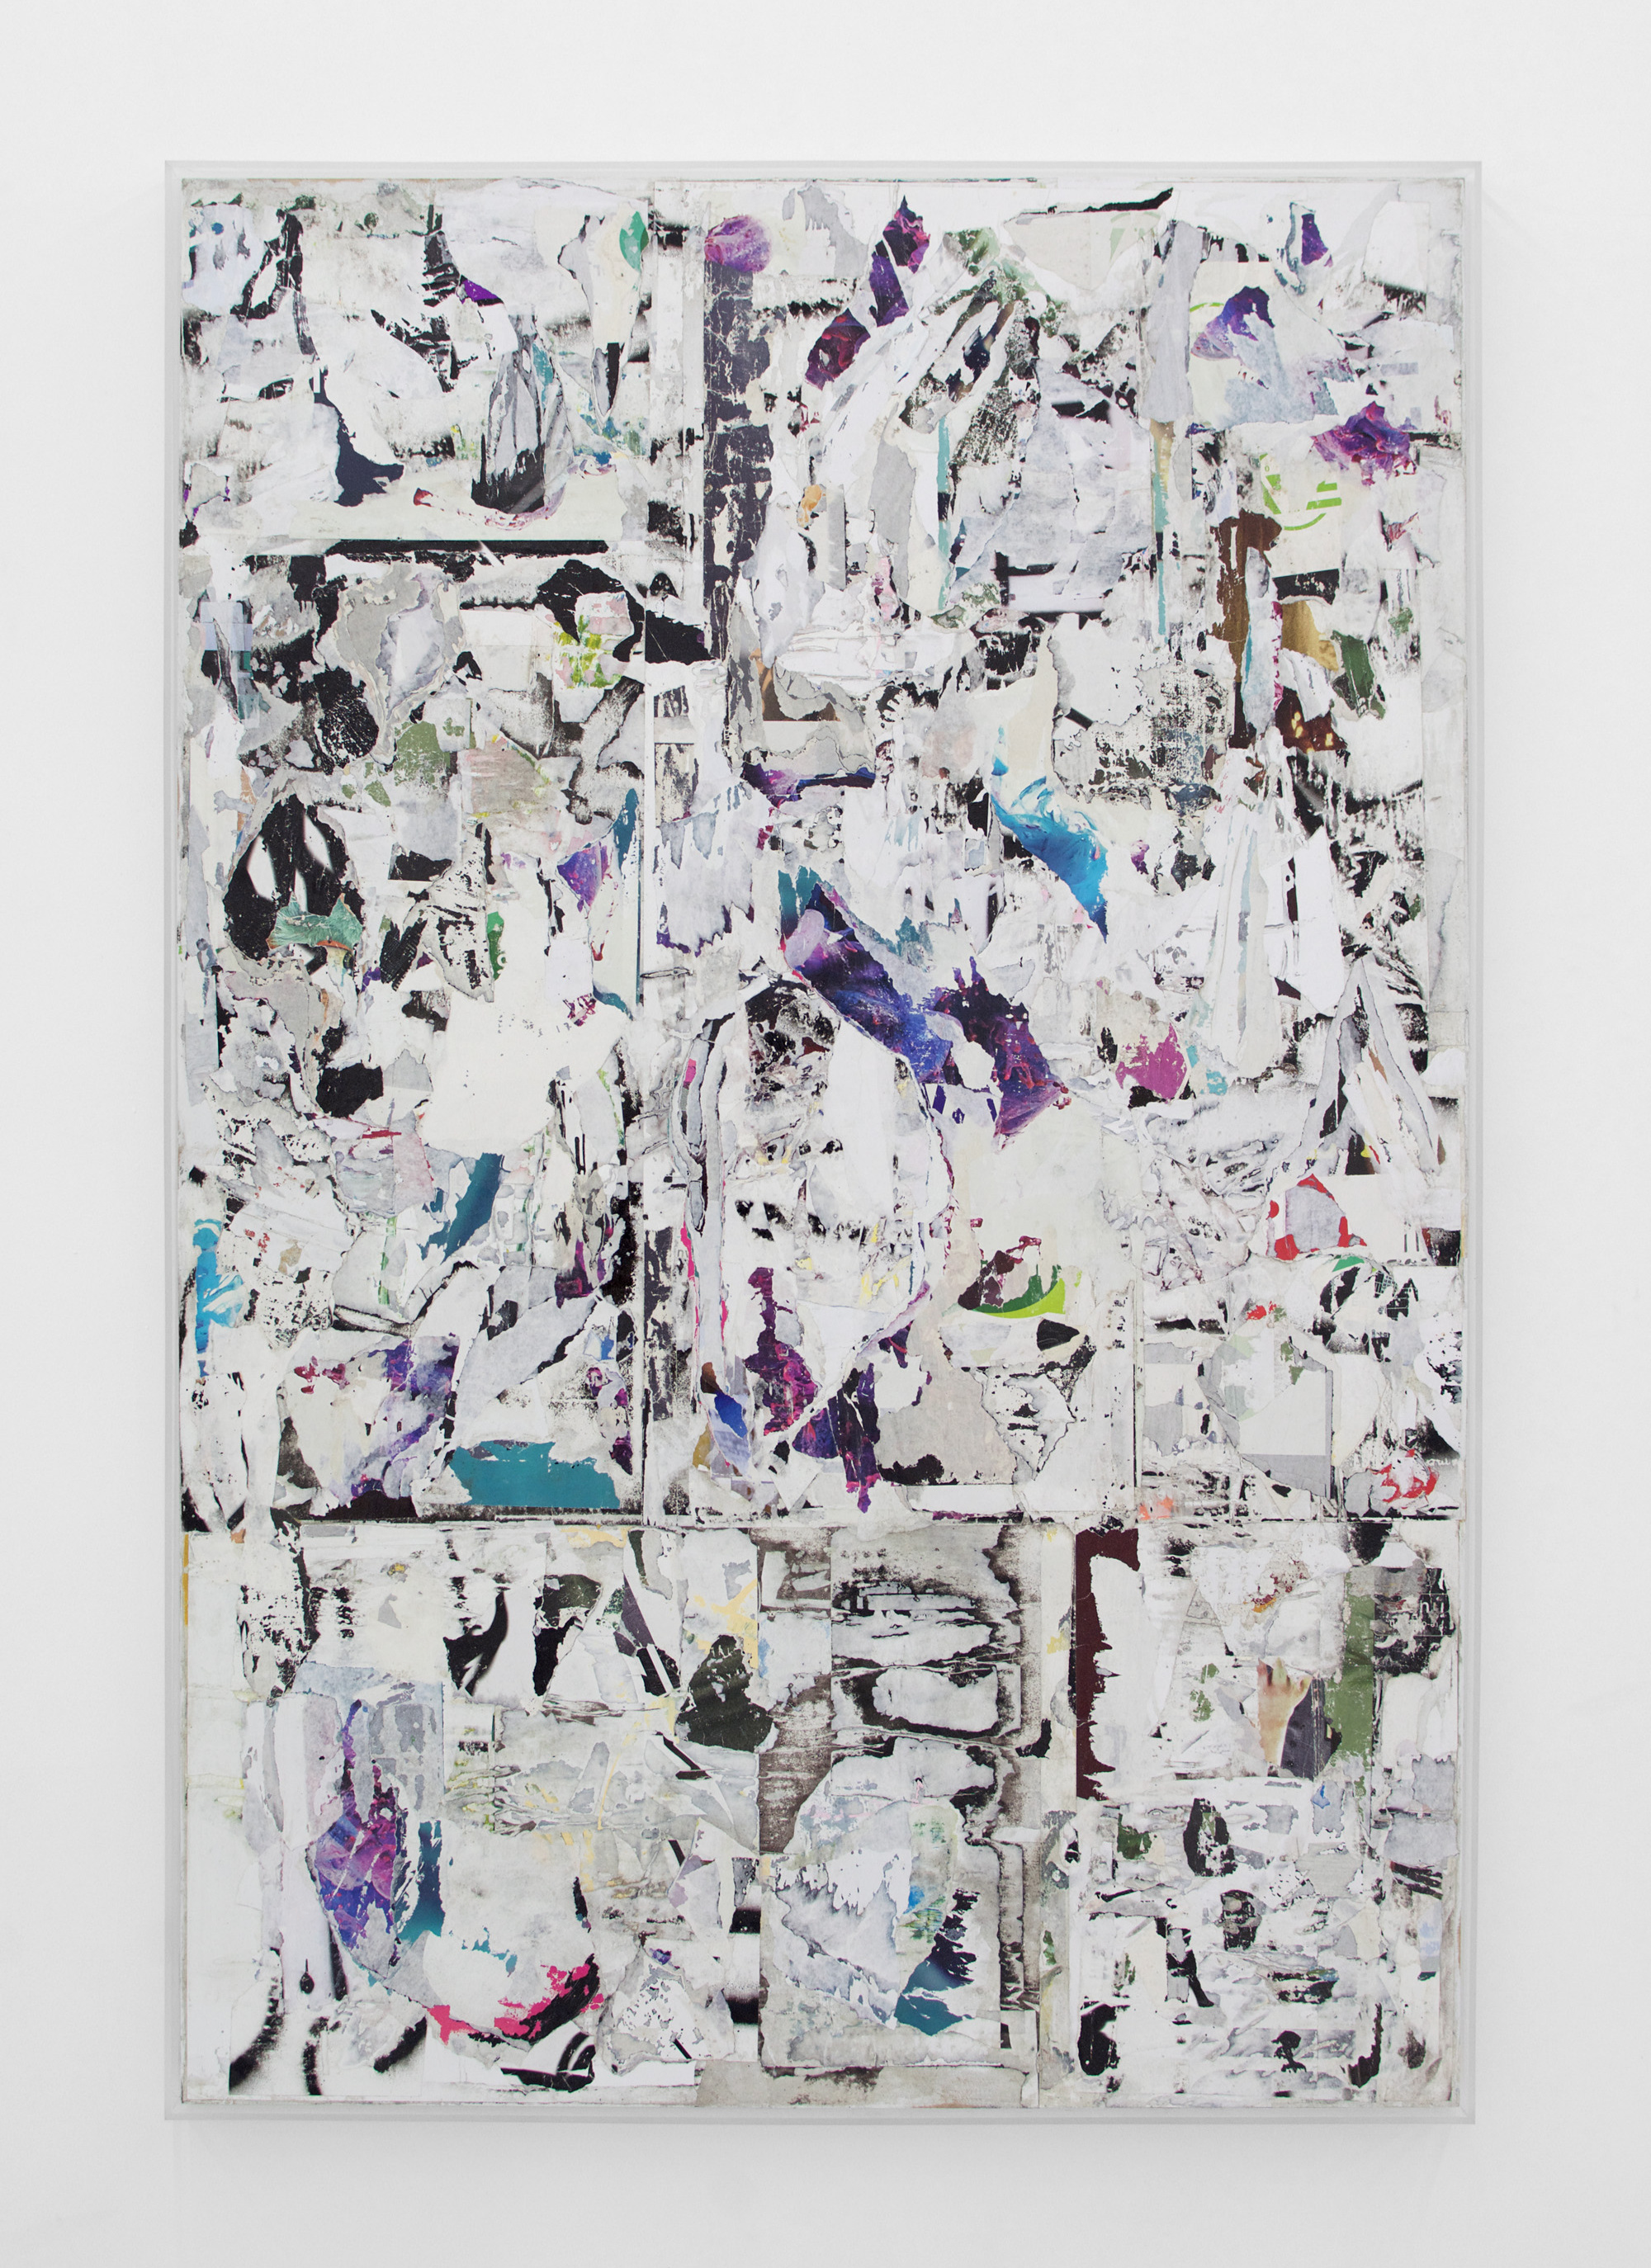 ANDREW LAUMANN   Untitled (Morpho),  2016, Acrylic paint, methylcellulose, paper, on panel in acrylic frame